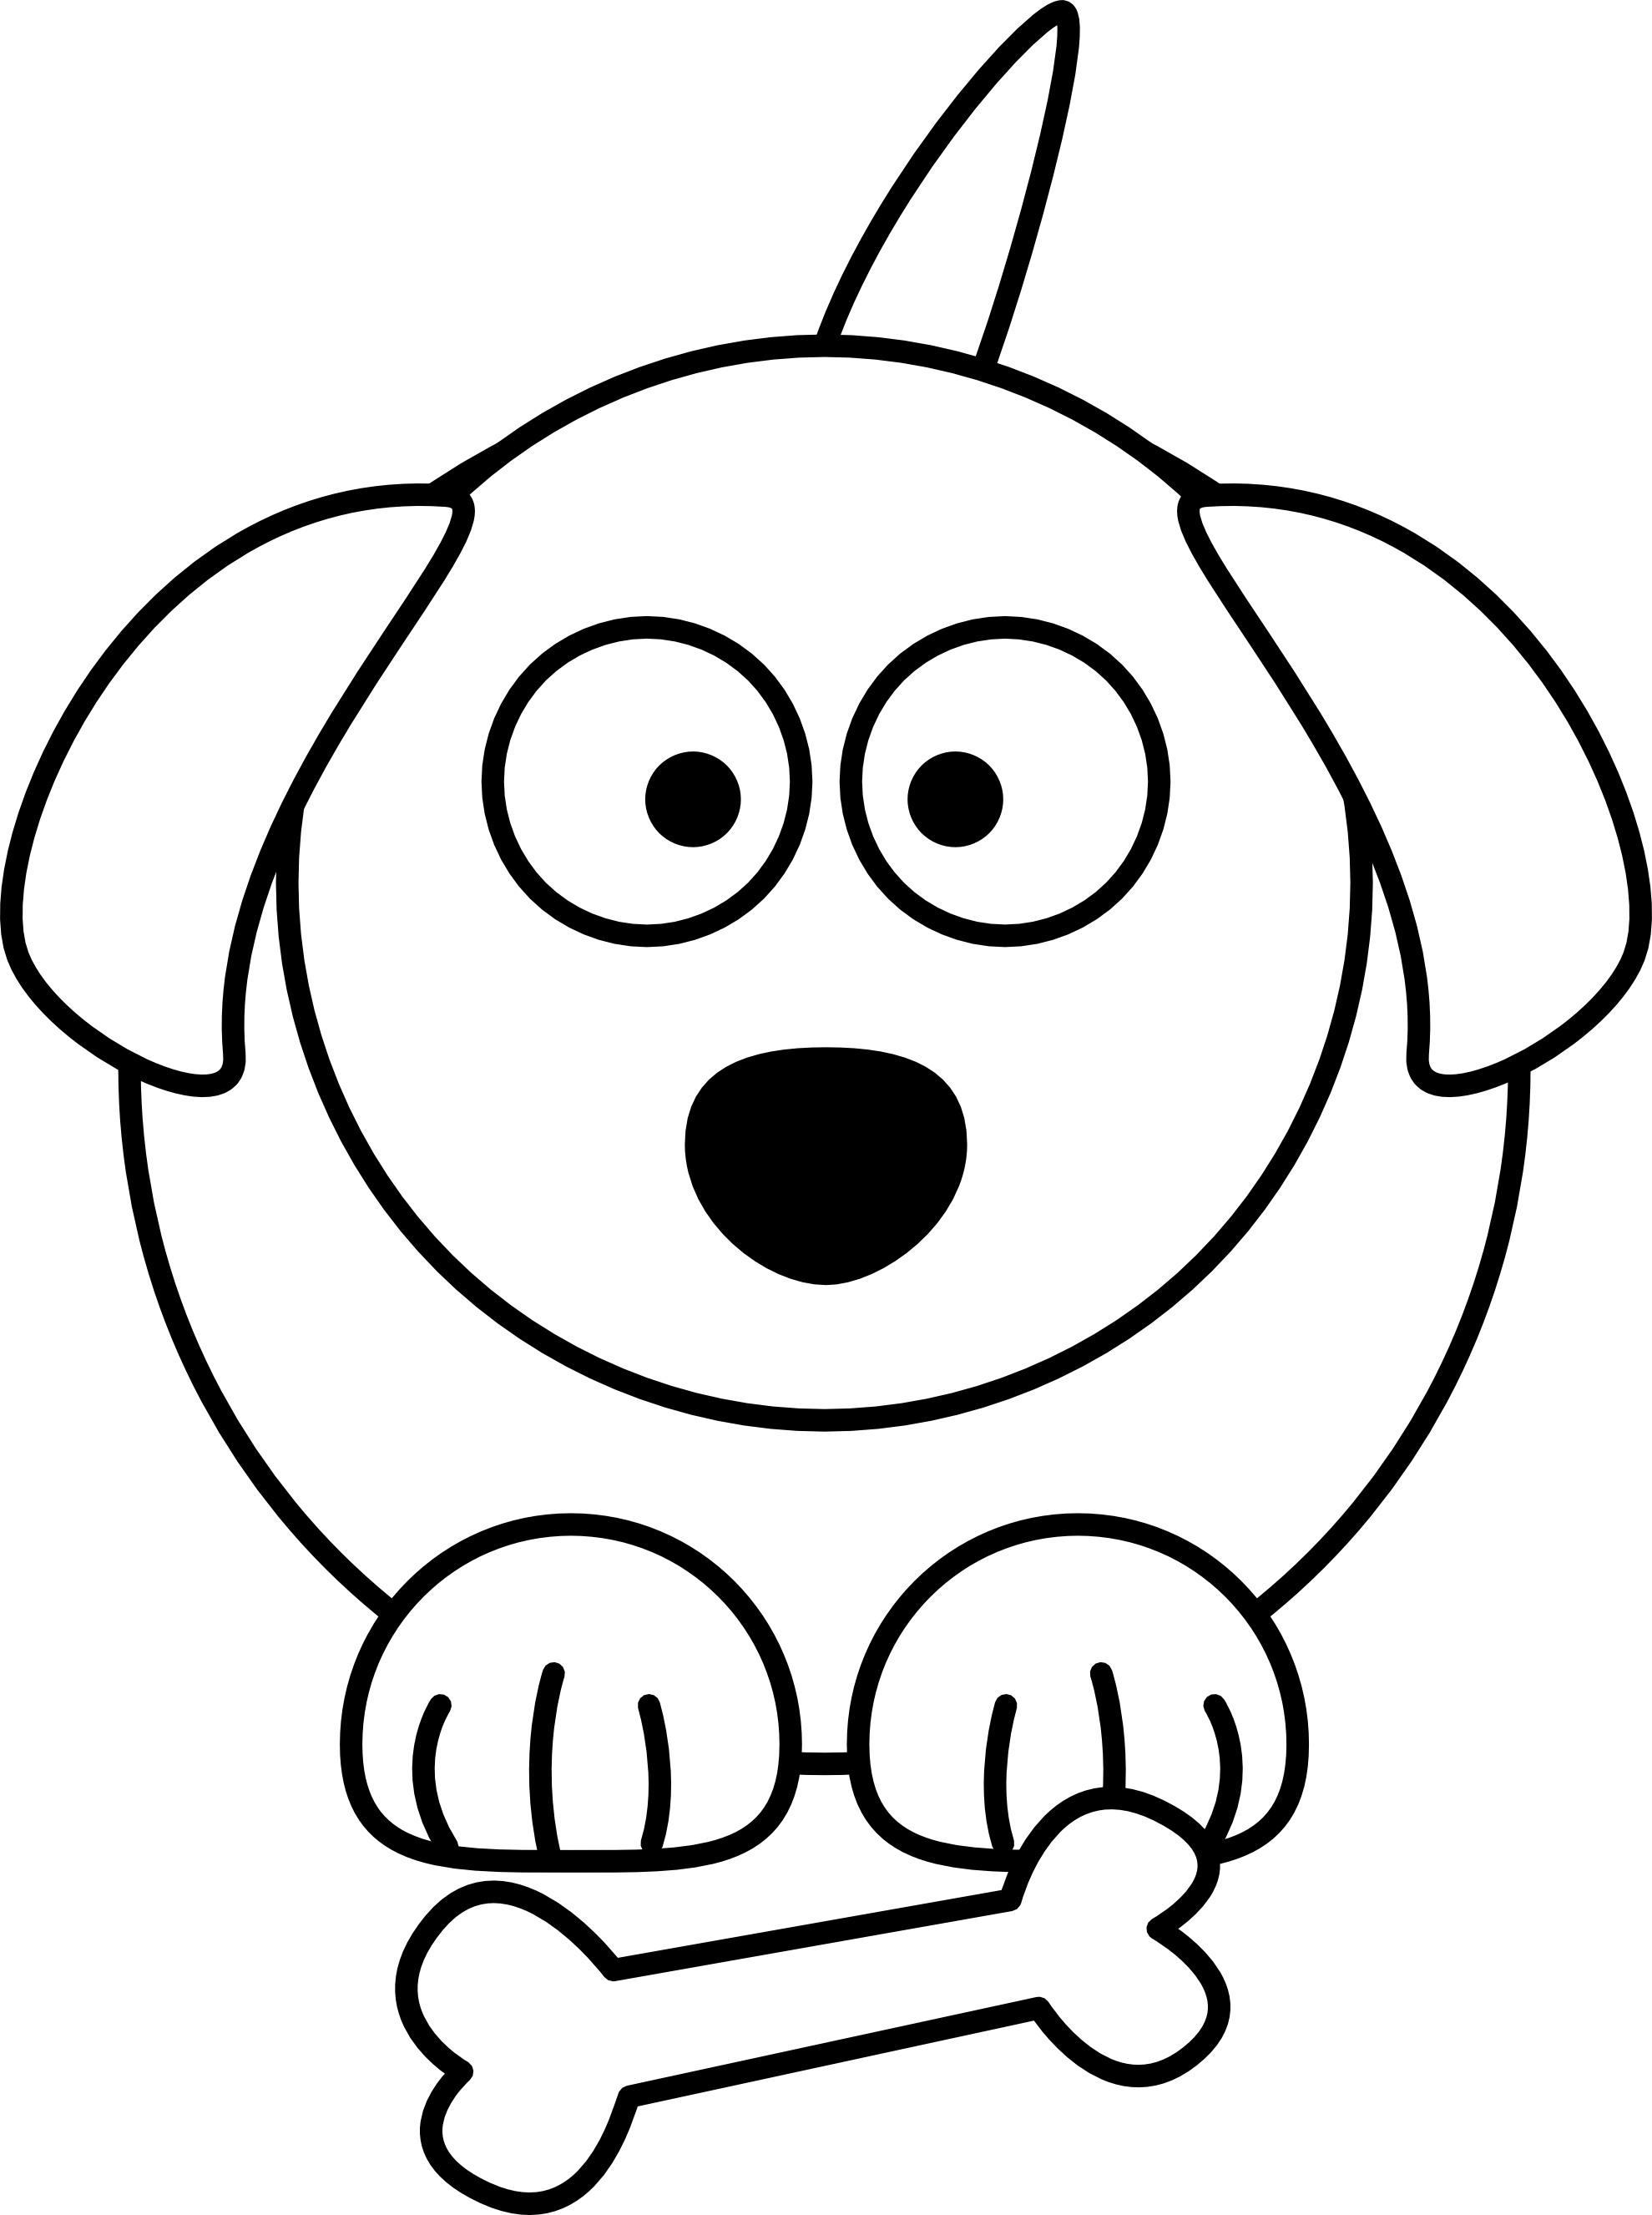 Nose clipart black and white. Cartoon drawings of animals